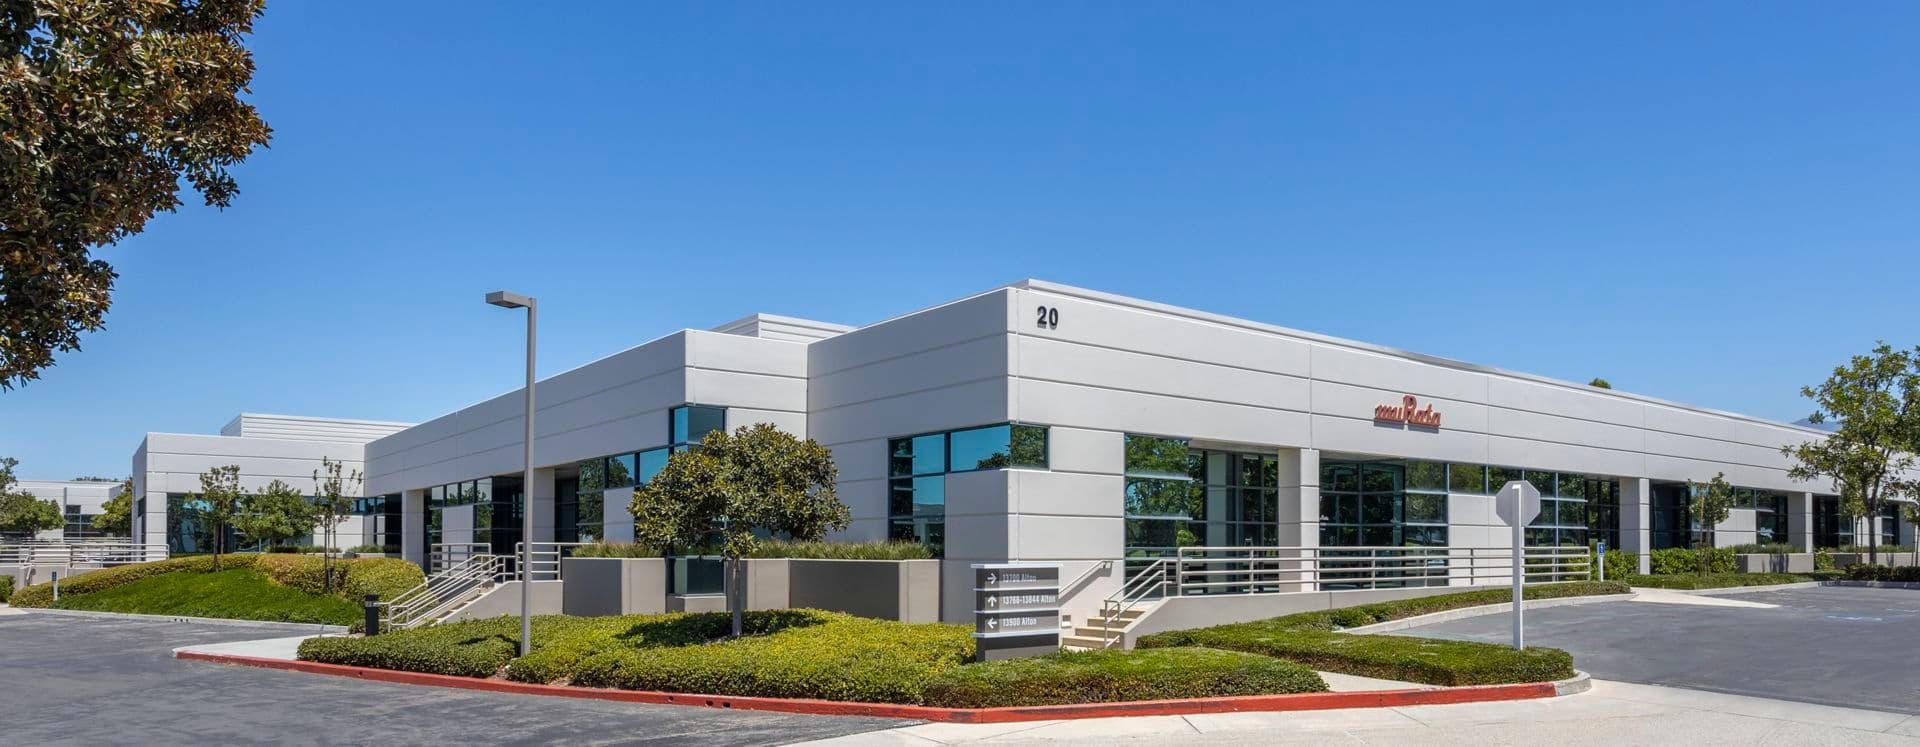 Exterior View of 20 Fairbanks at Tripointe in Irvine, CA.